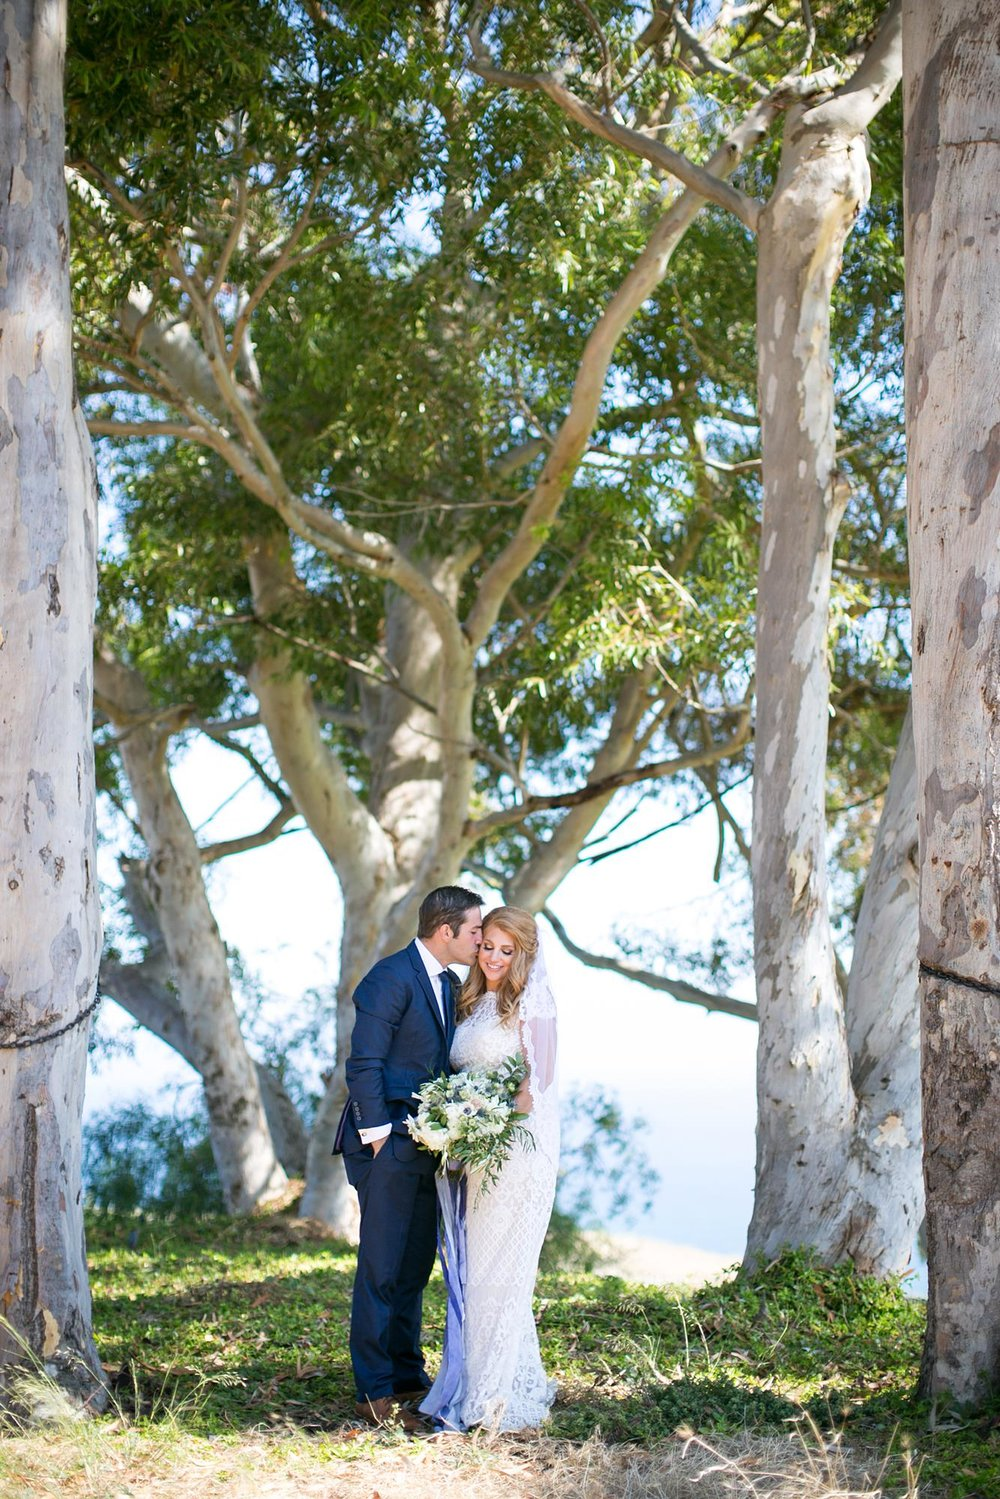 Catalina View Gardens Wedding | Miki & Sonja Photography | mikiandsonja.com